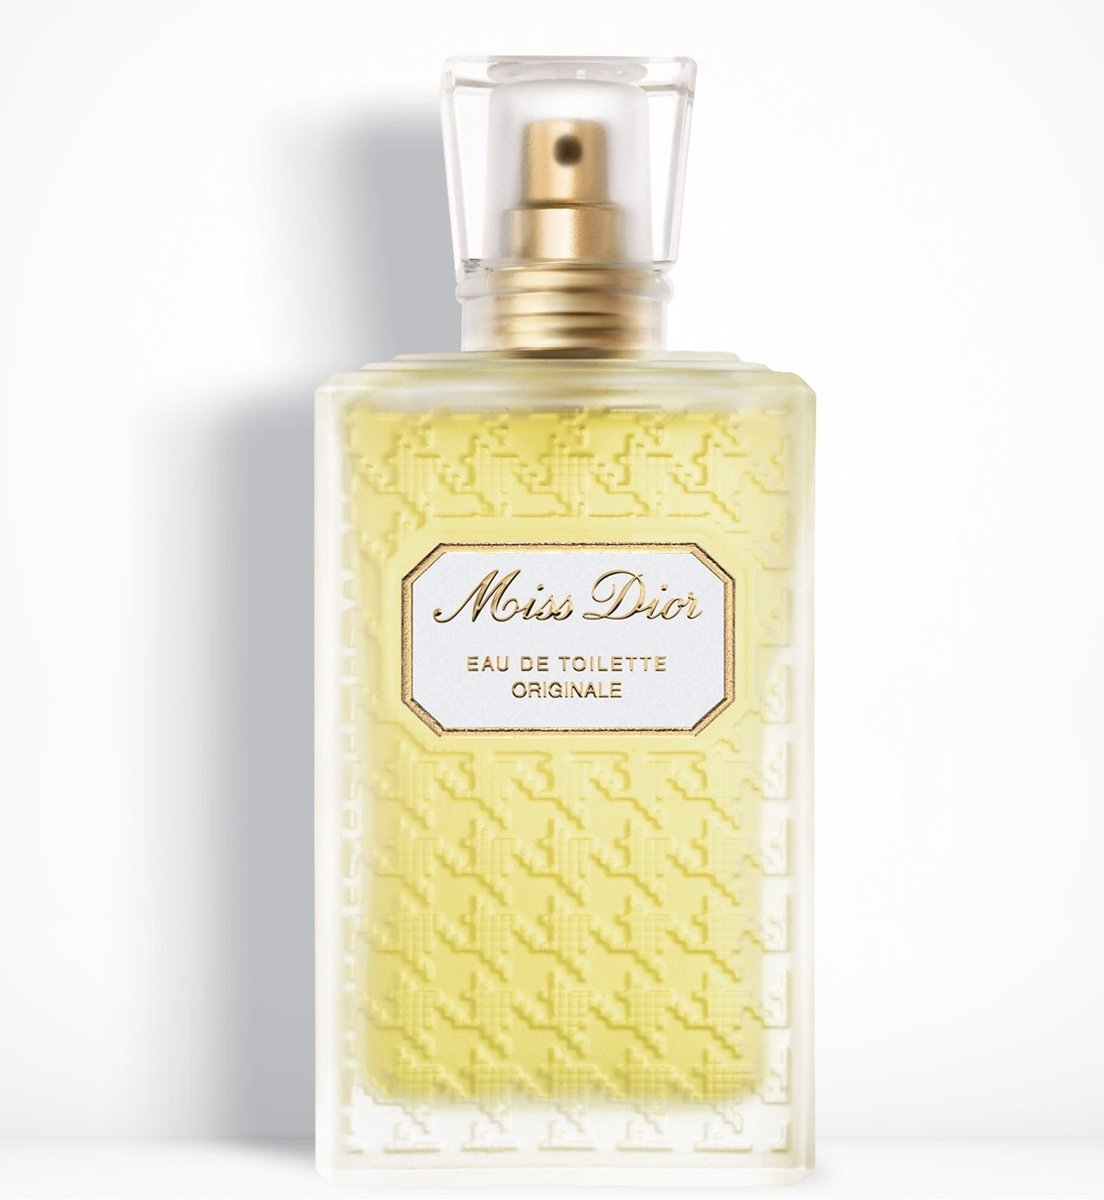 Miss Dior Originale - 50 ml - Eau de Toilette